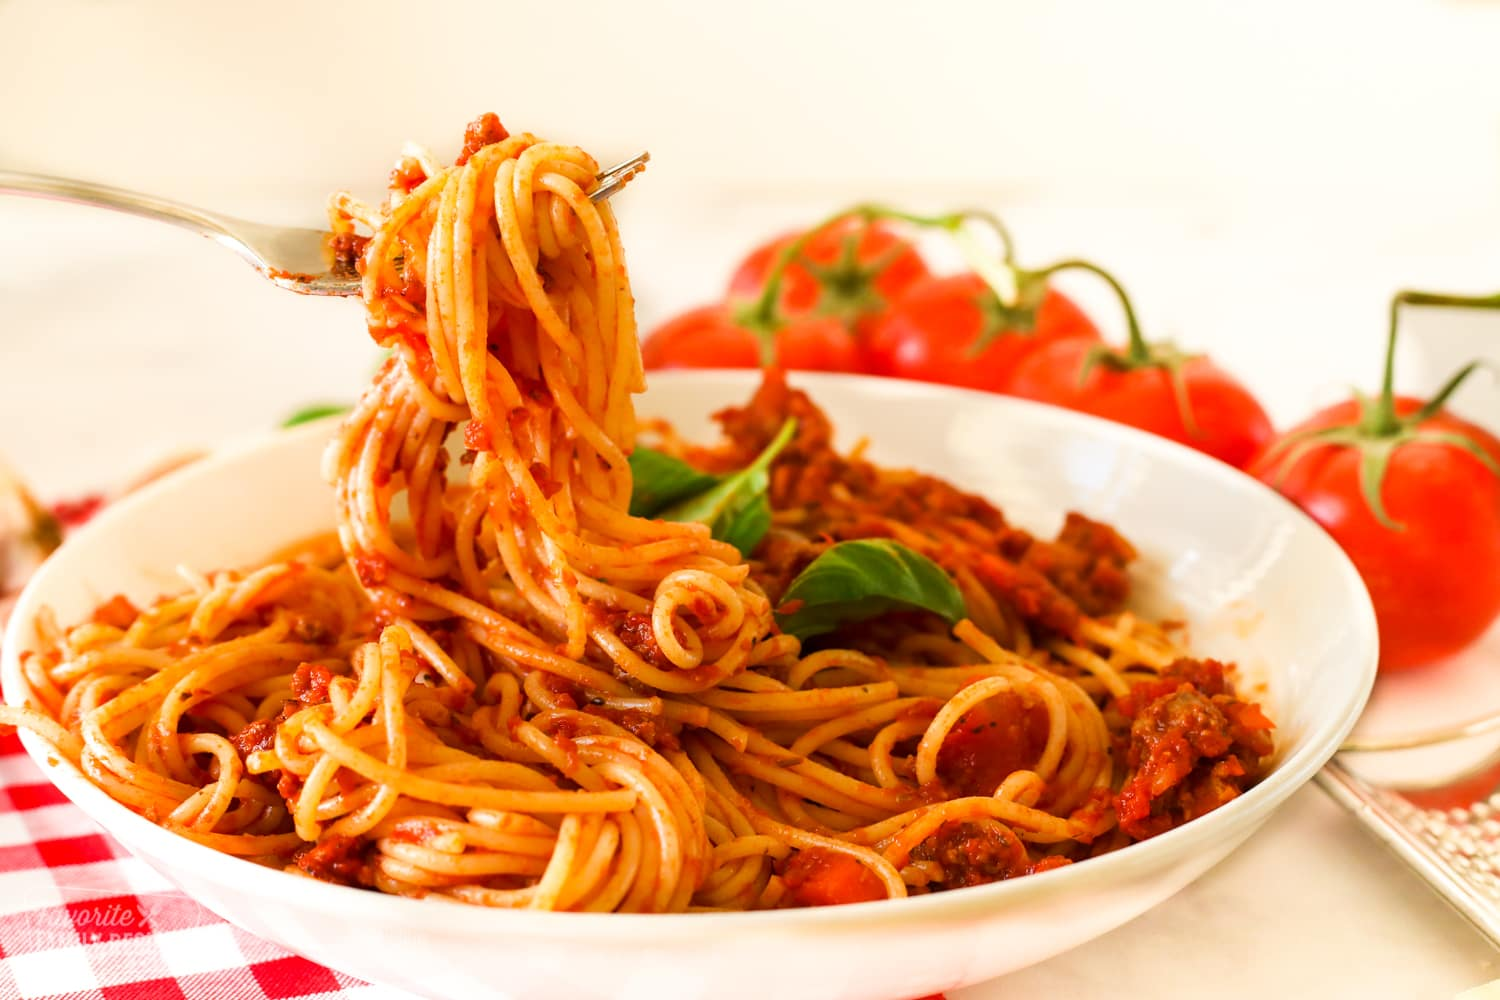 Spaghetti being twirled with a fork